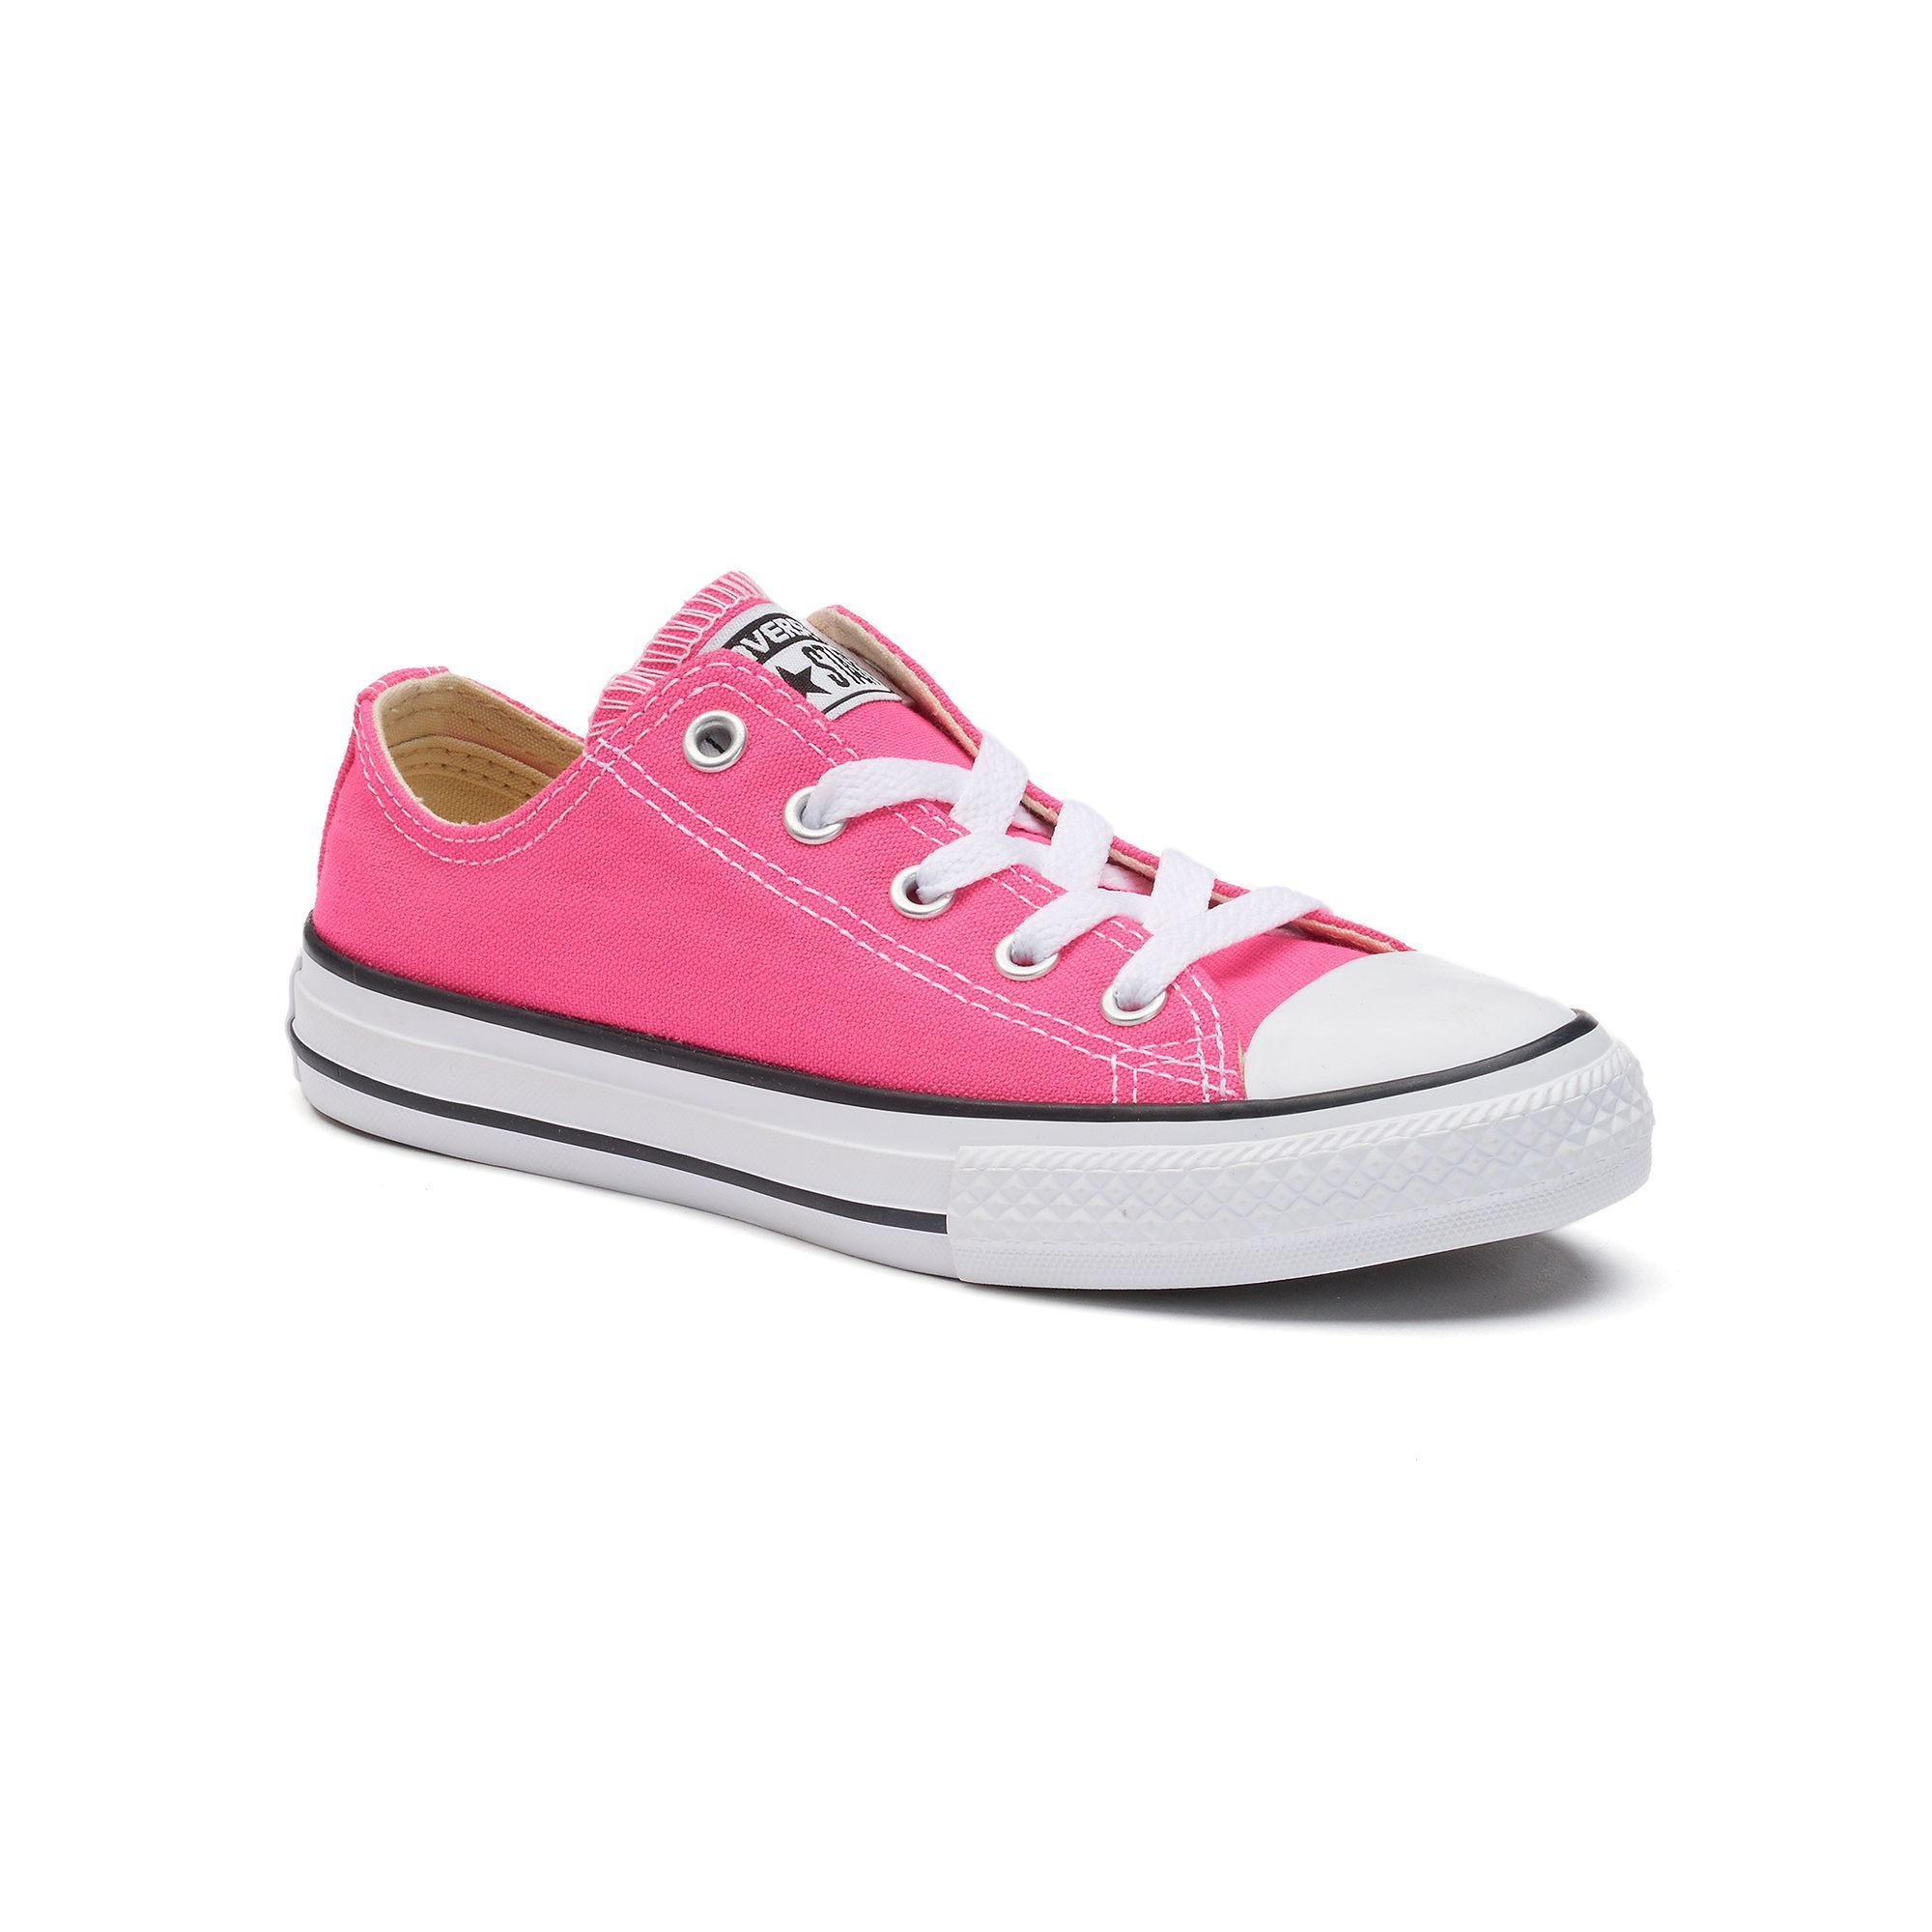 7c9aa1f11045 Kids  Converse Chuck Taylor All Star Sneakers